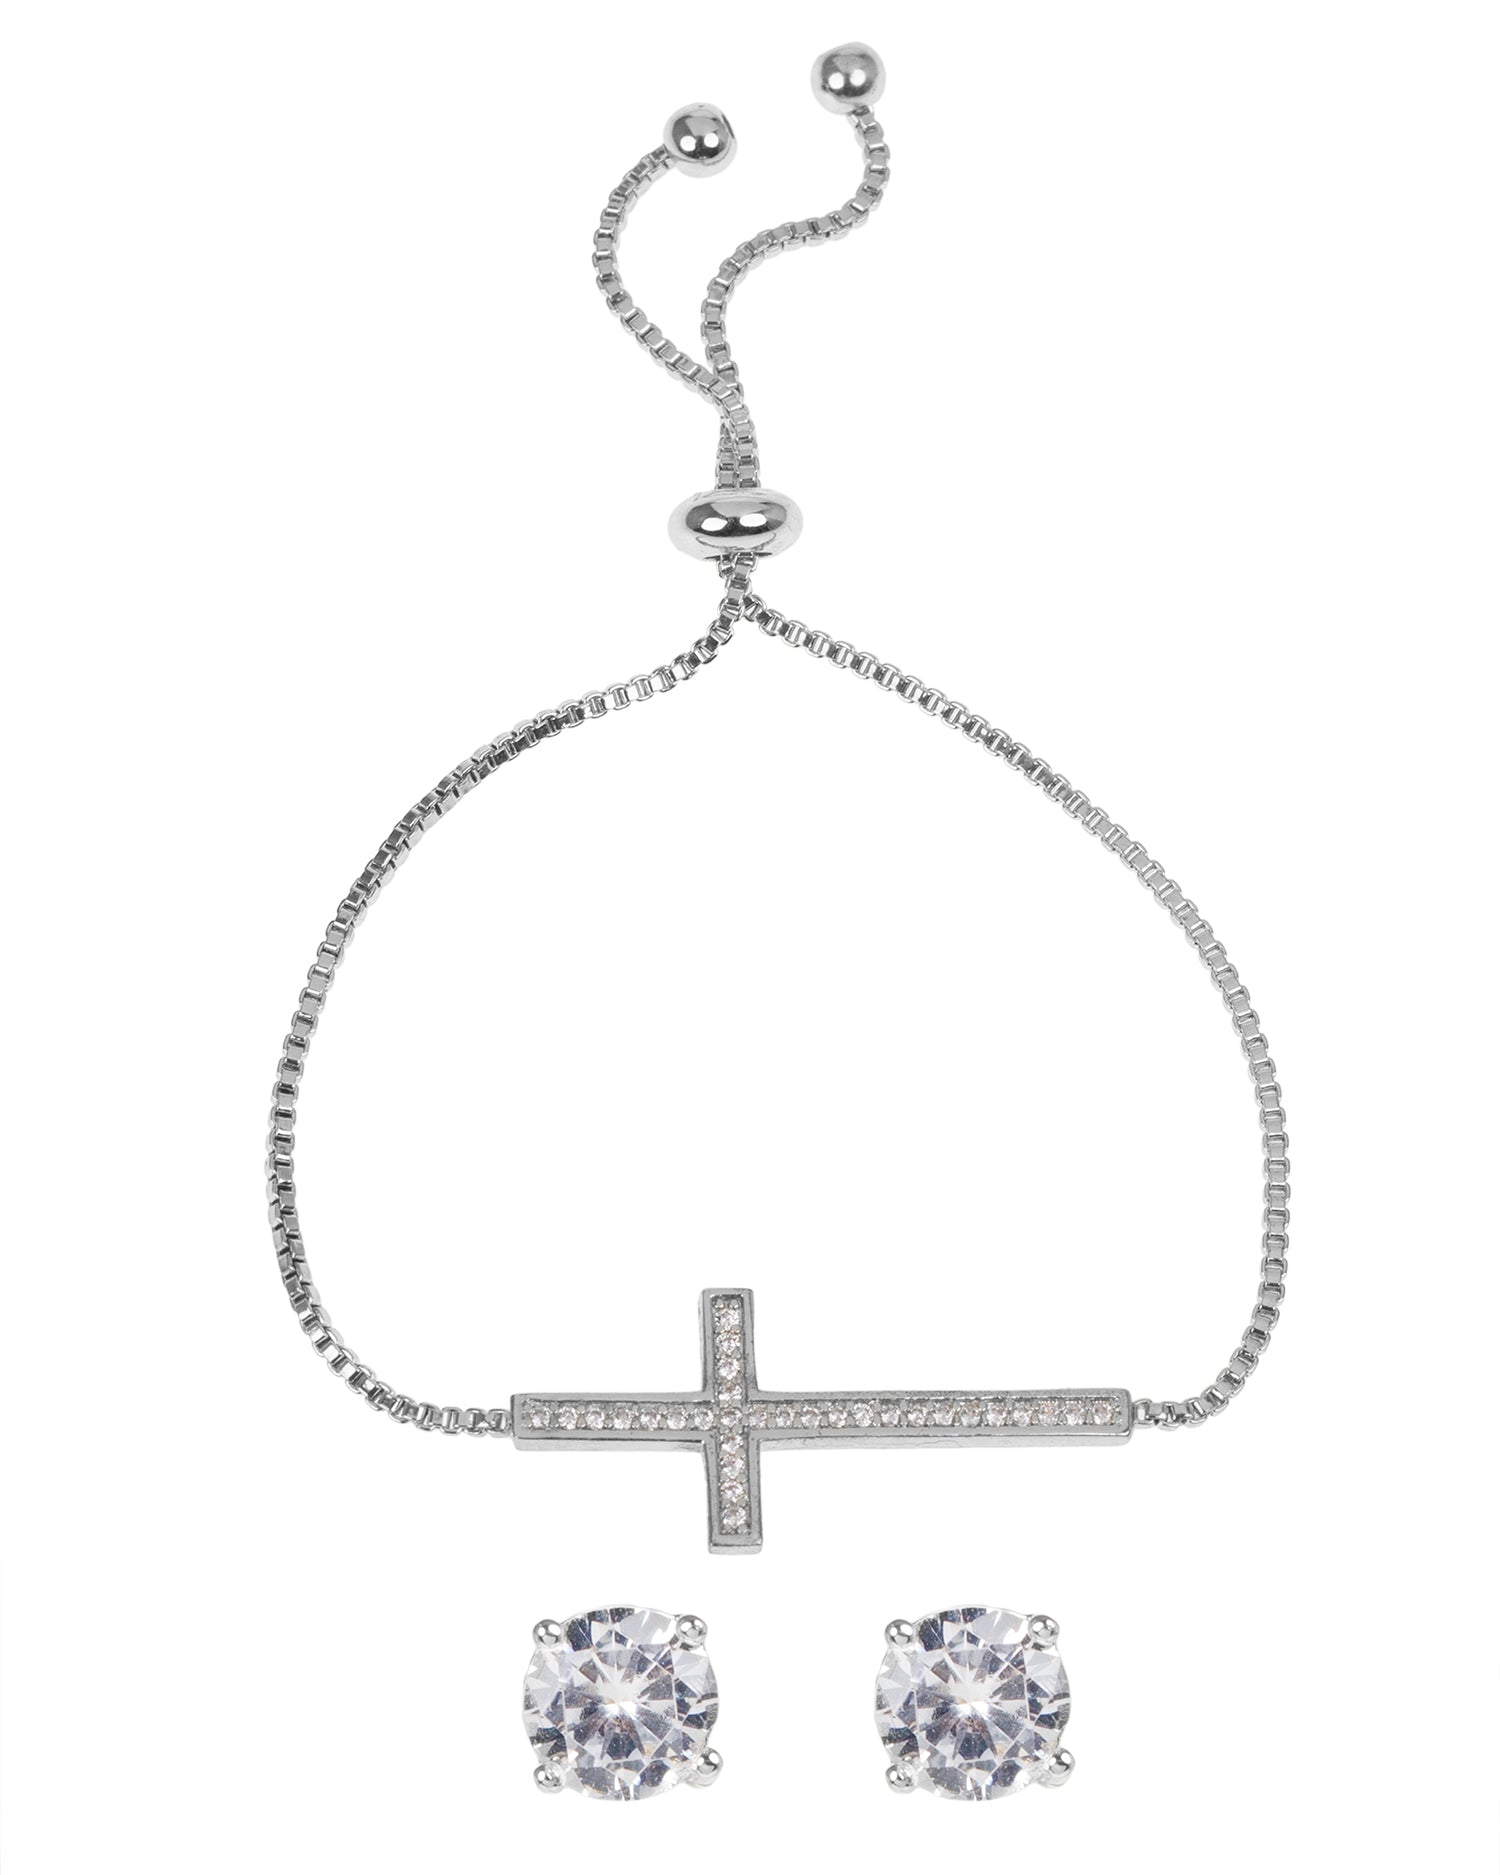 Pave CZ Cross Bolo Bracelet with Round Stud Earring Set